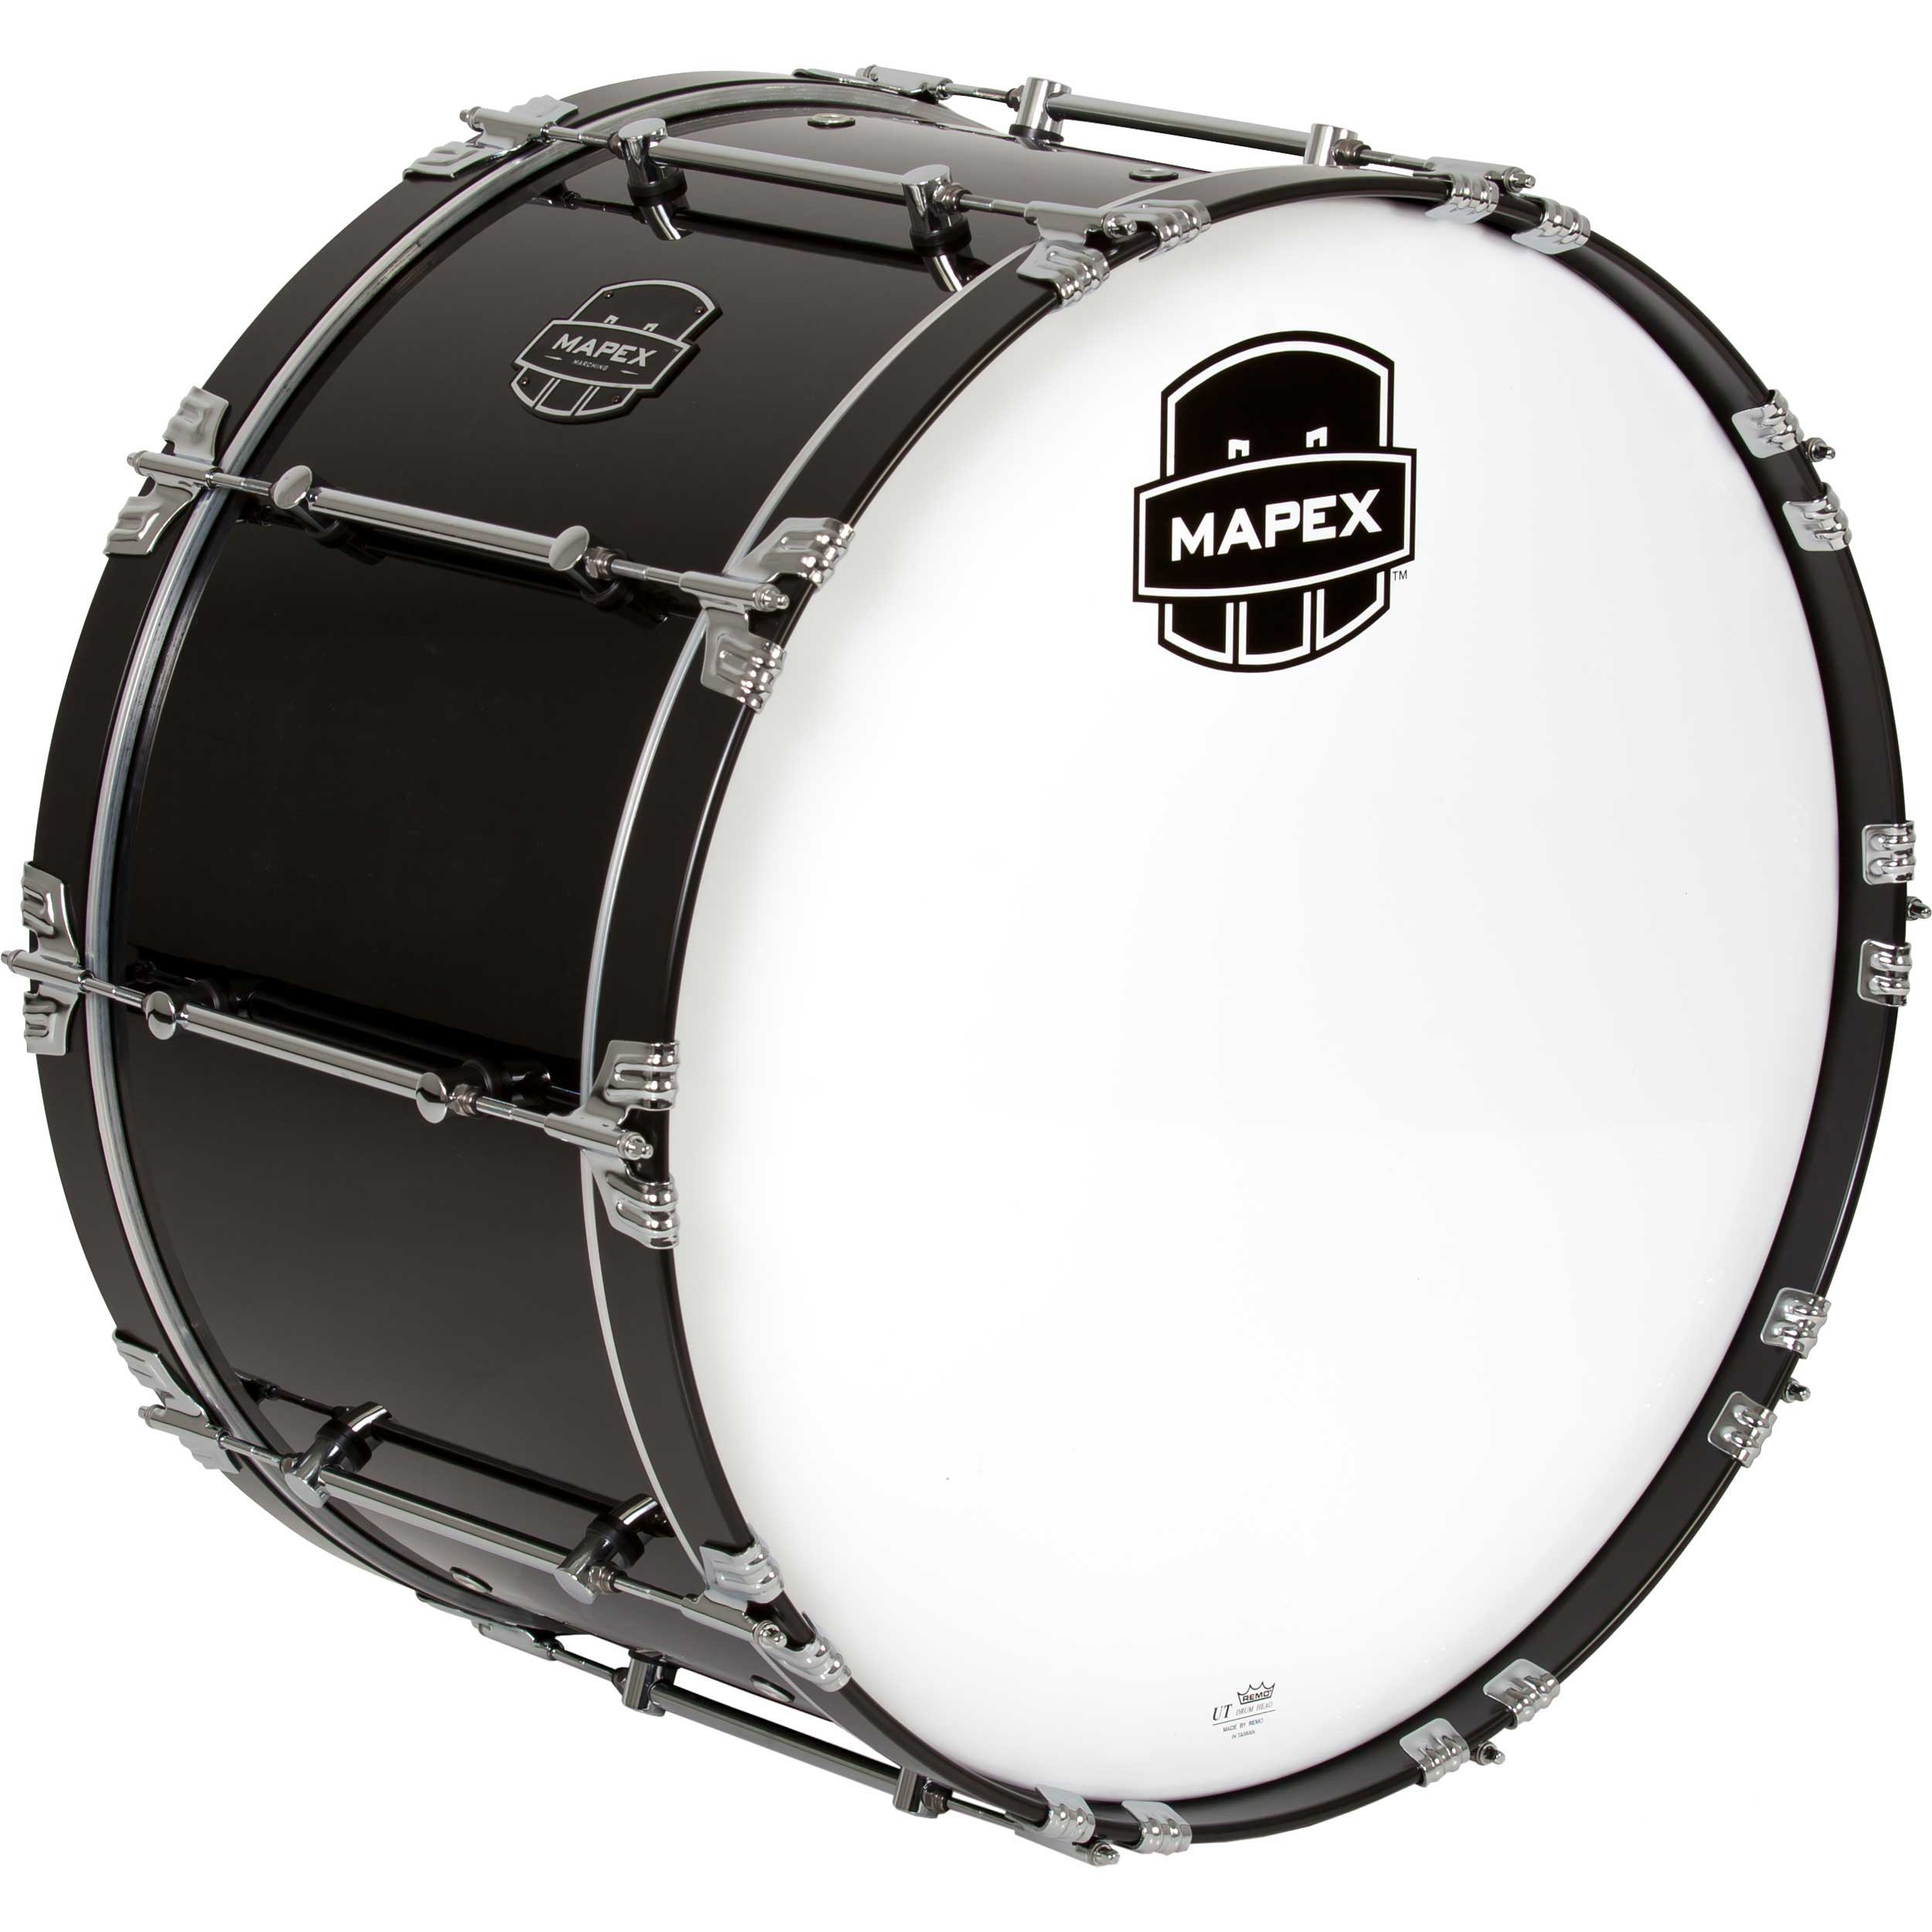 "Mapex 32"" Quantum Marching Bass Drum in Gloss Black"